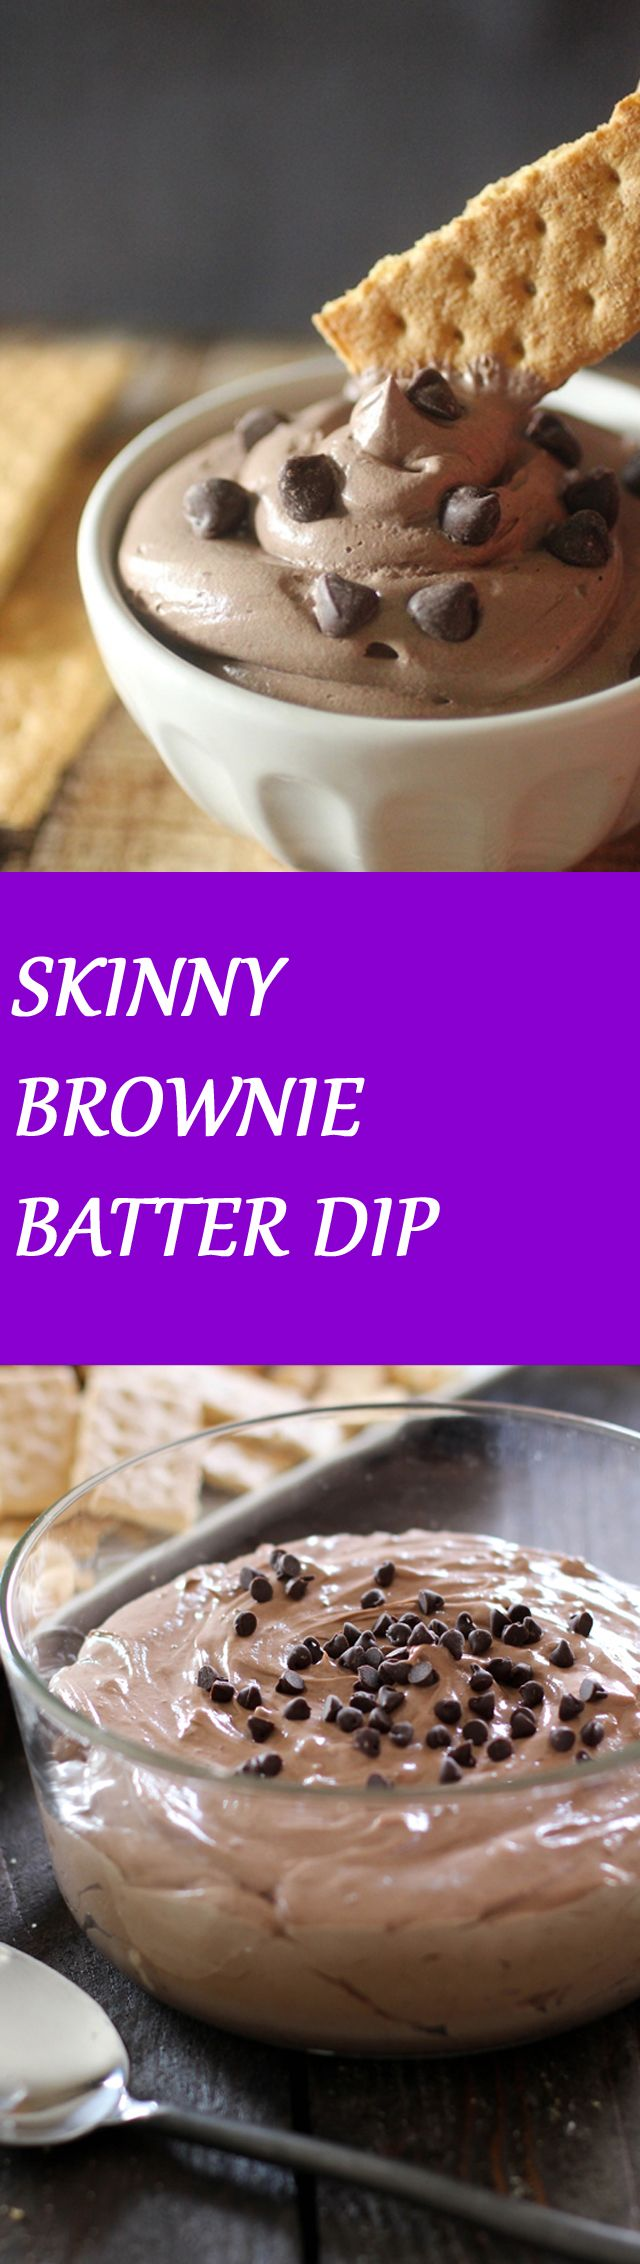 SKINNY BROWNIE BATTER DIP To get the recipe click on the image :D